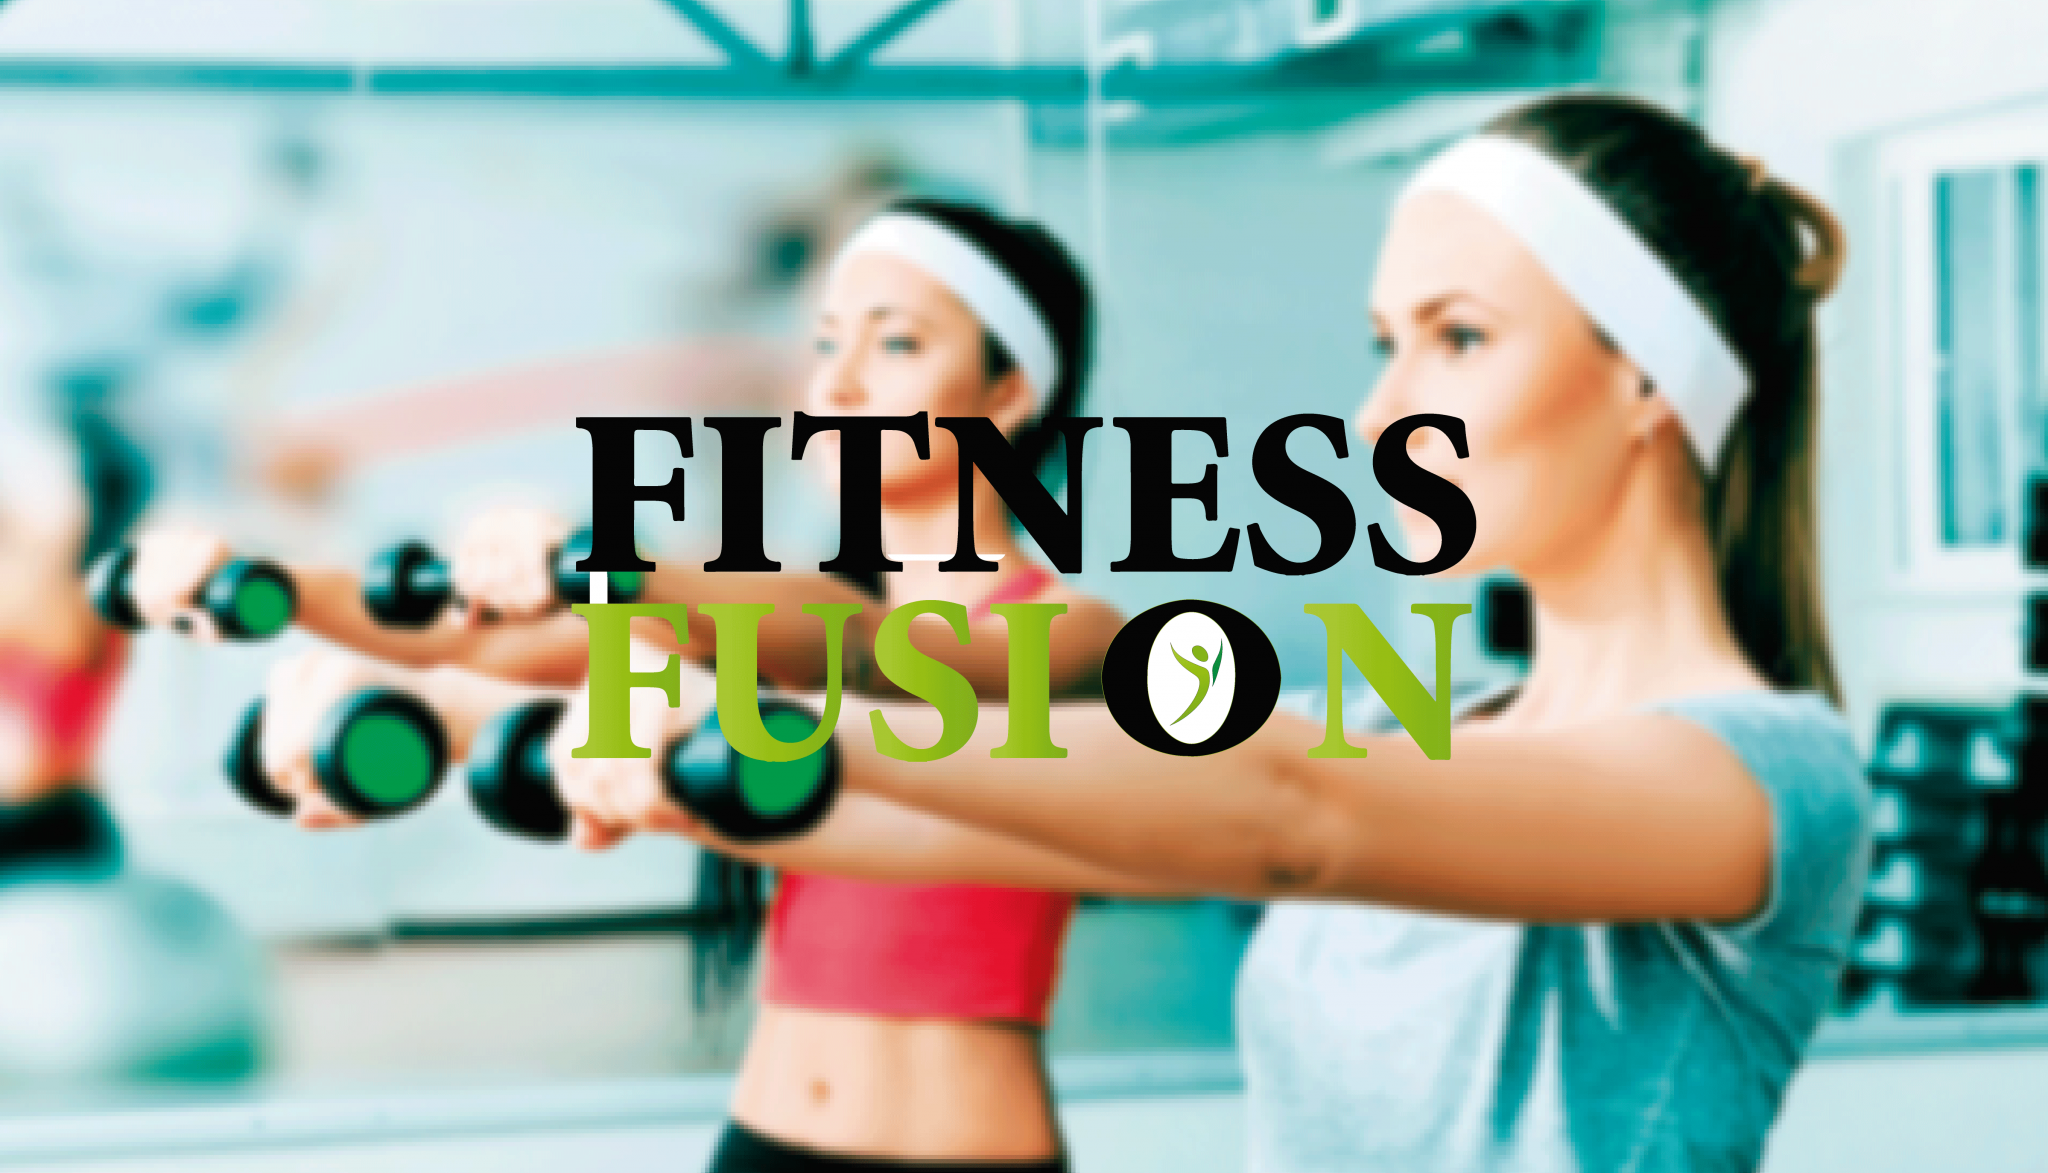 FITNESS FUSION HOME 2